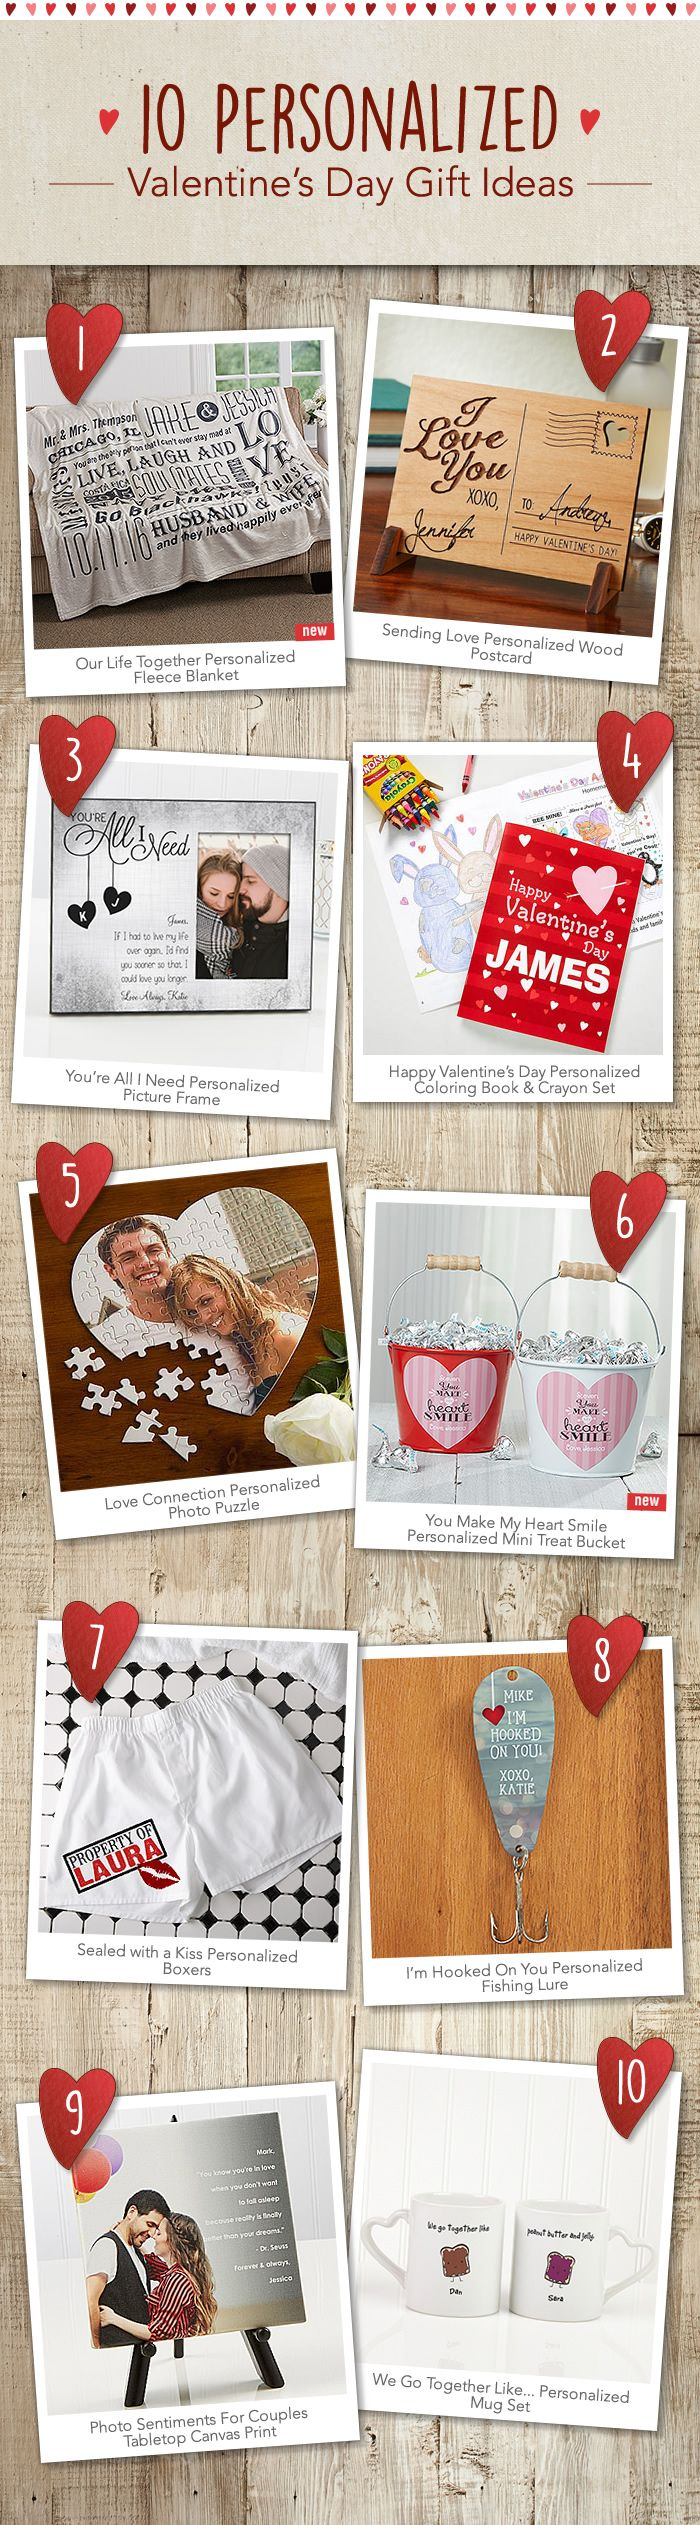 LOVE these Personalized Valentine's Day Gift Ideas! They're so unique and are sure to make a lasting impression!